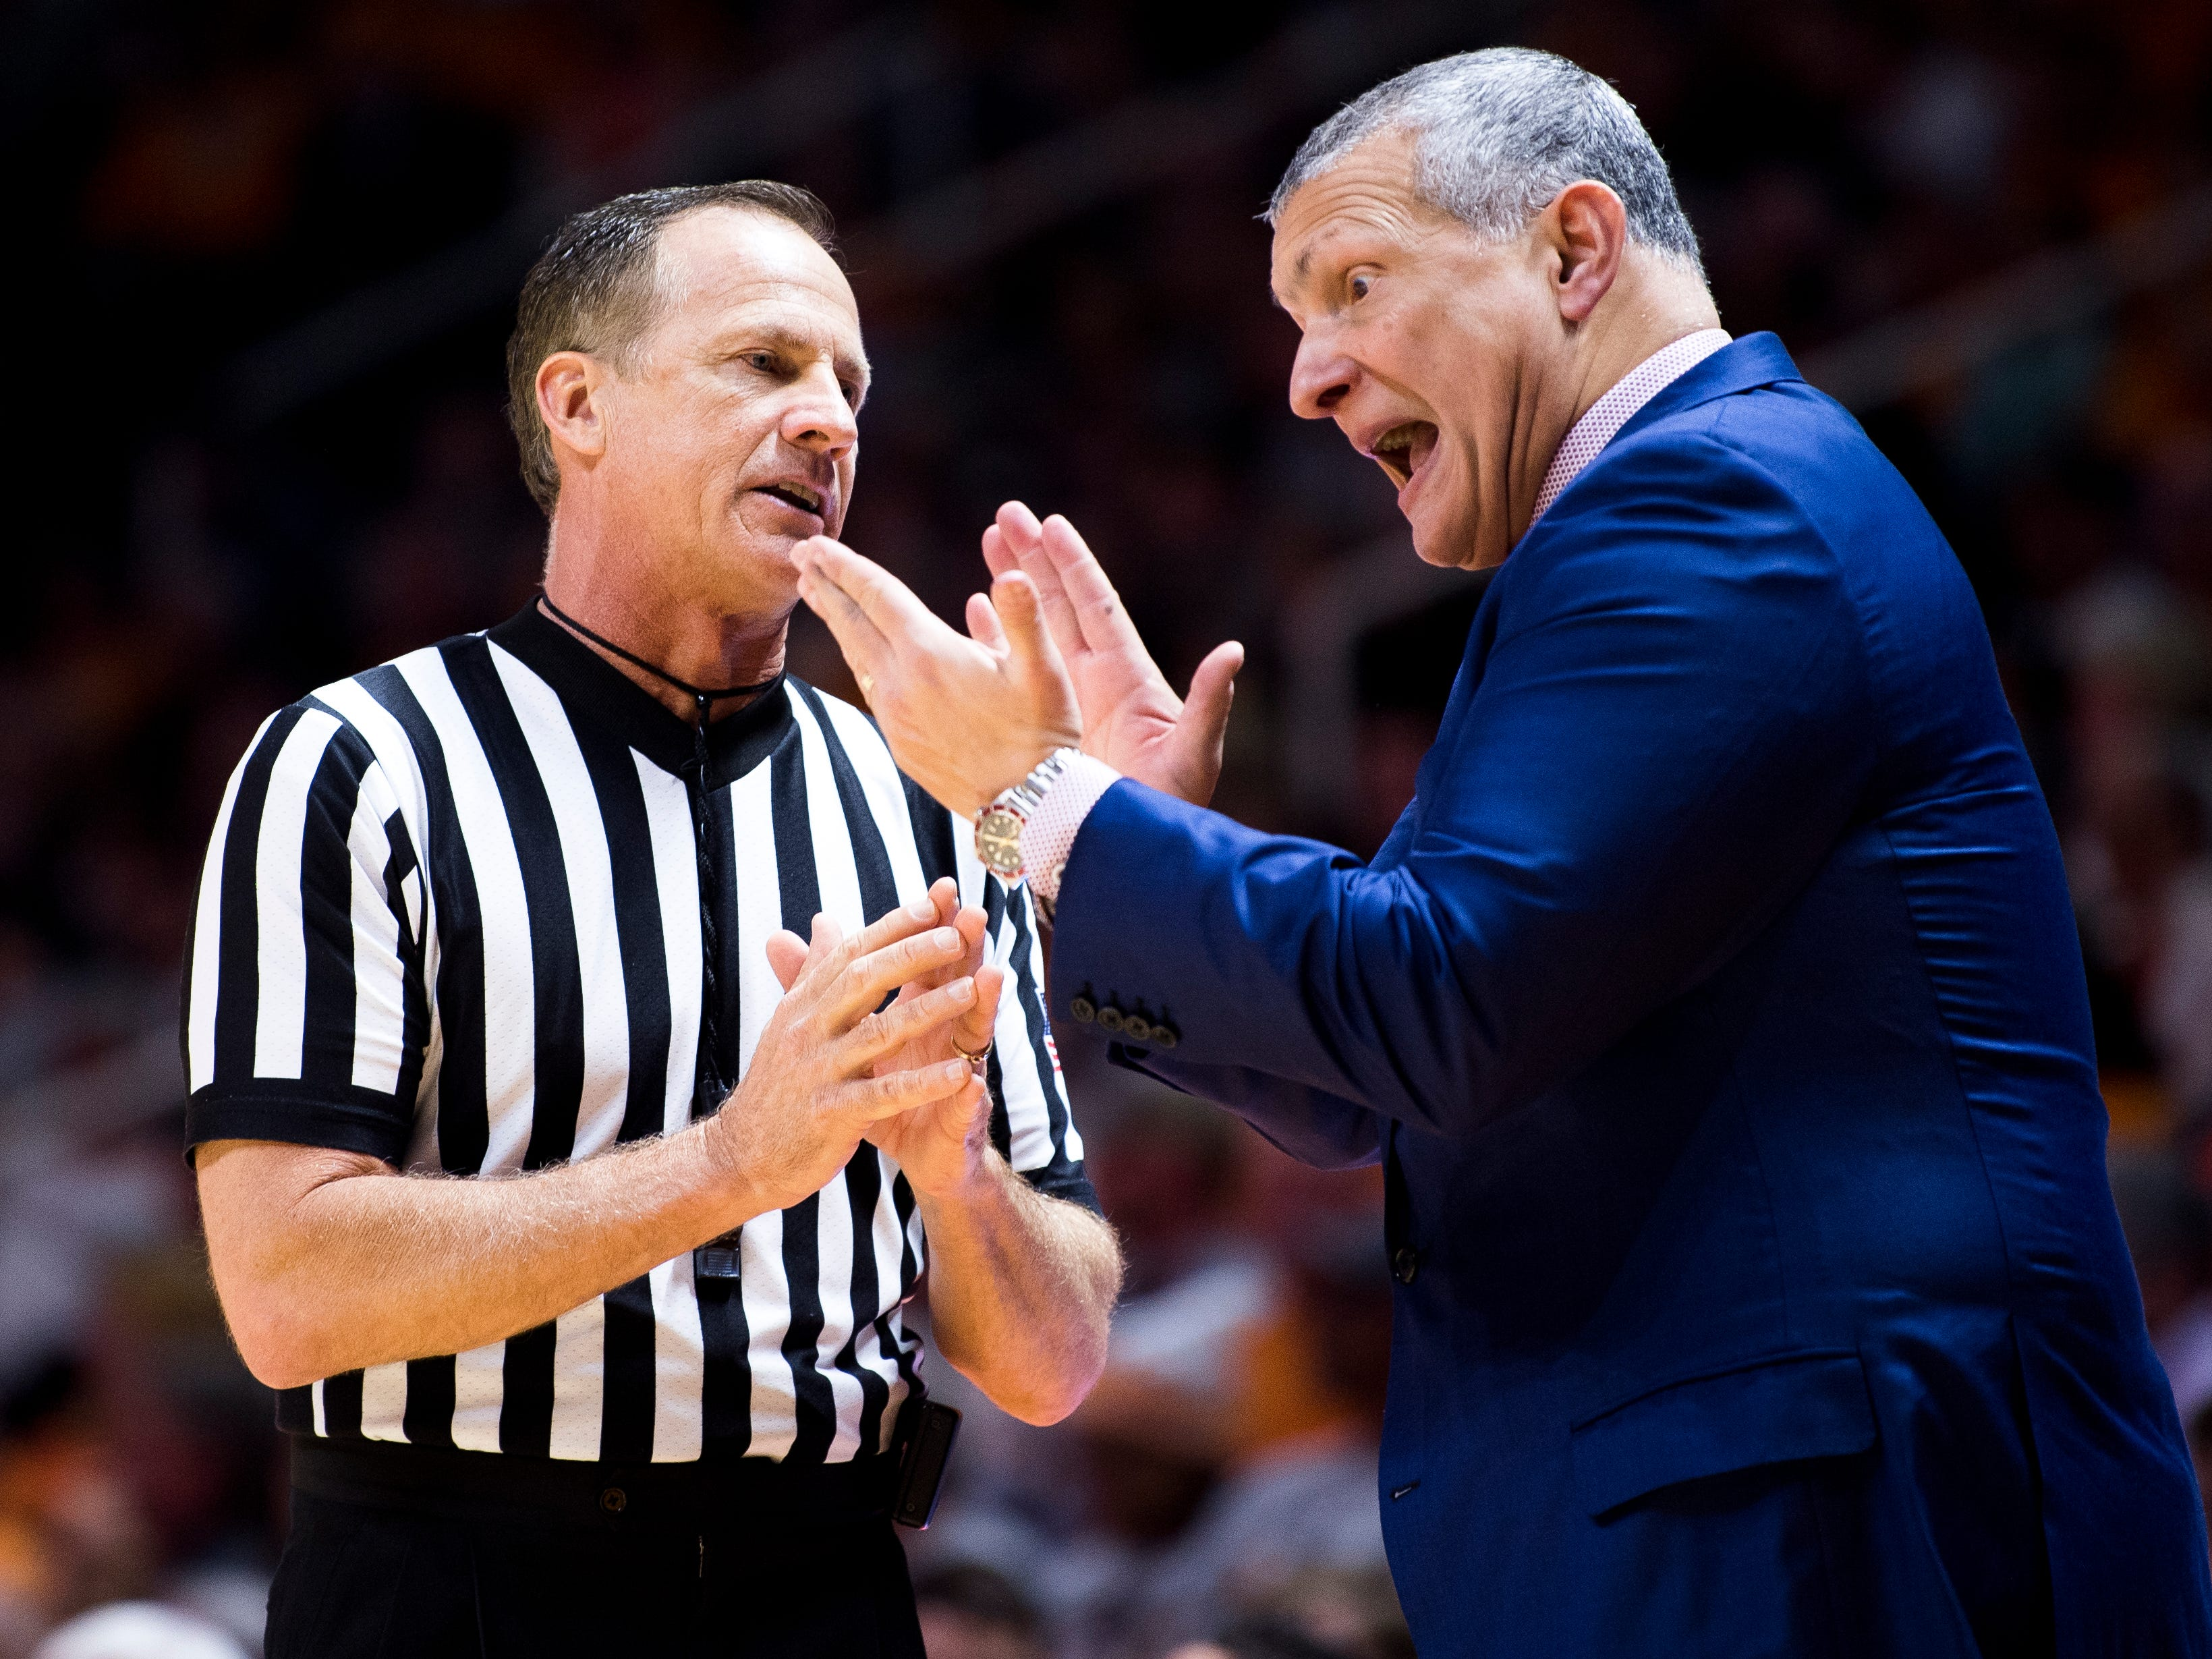 South Carolina Head Coach Frank Martin argues with an official during Tennessee's home SEC game against South Carolina at Thompson-Boling Arena in Knoxville on Wednesday, February 13, 2019.